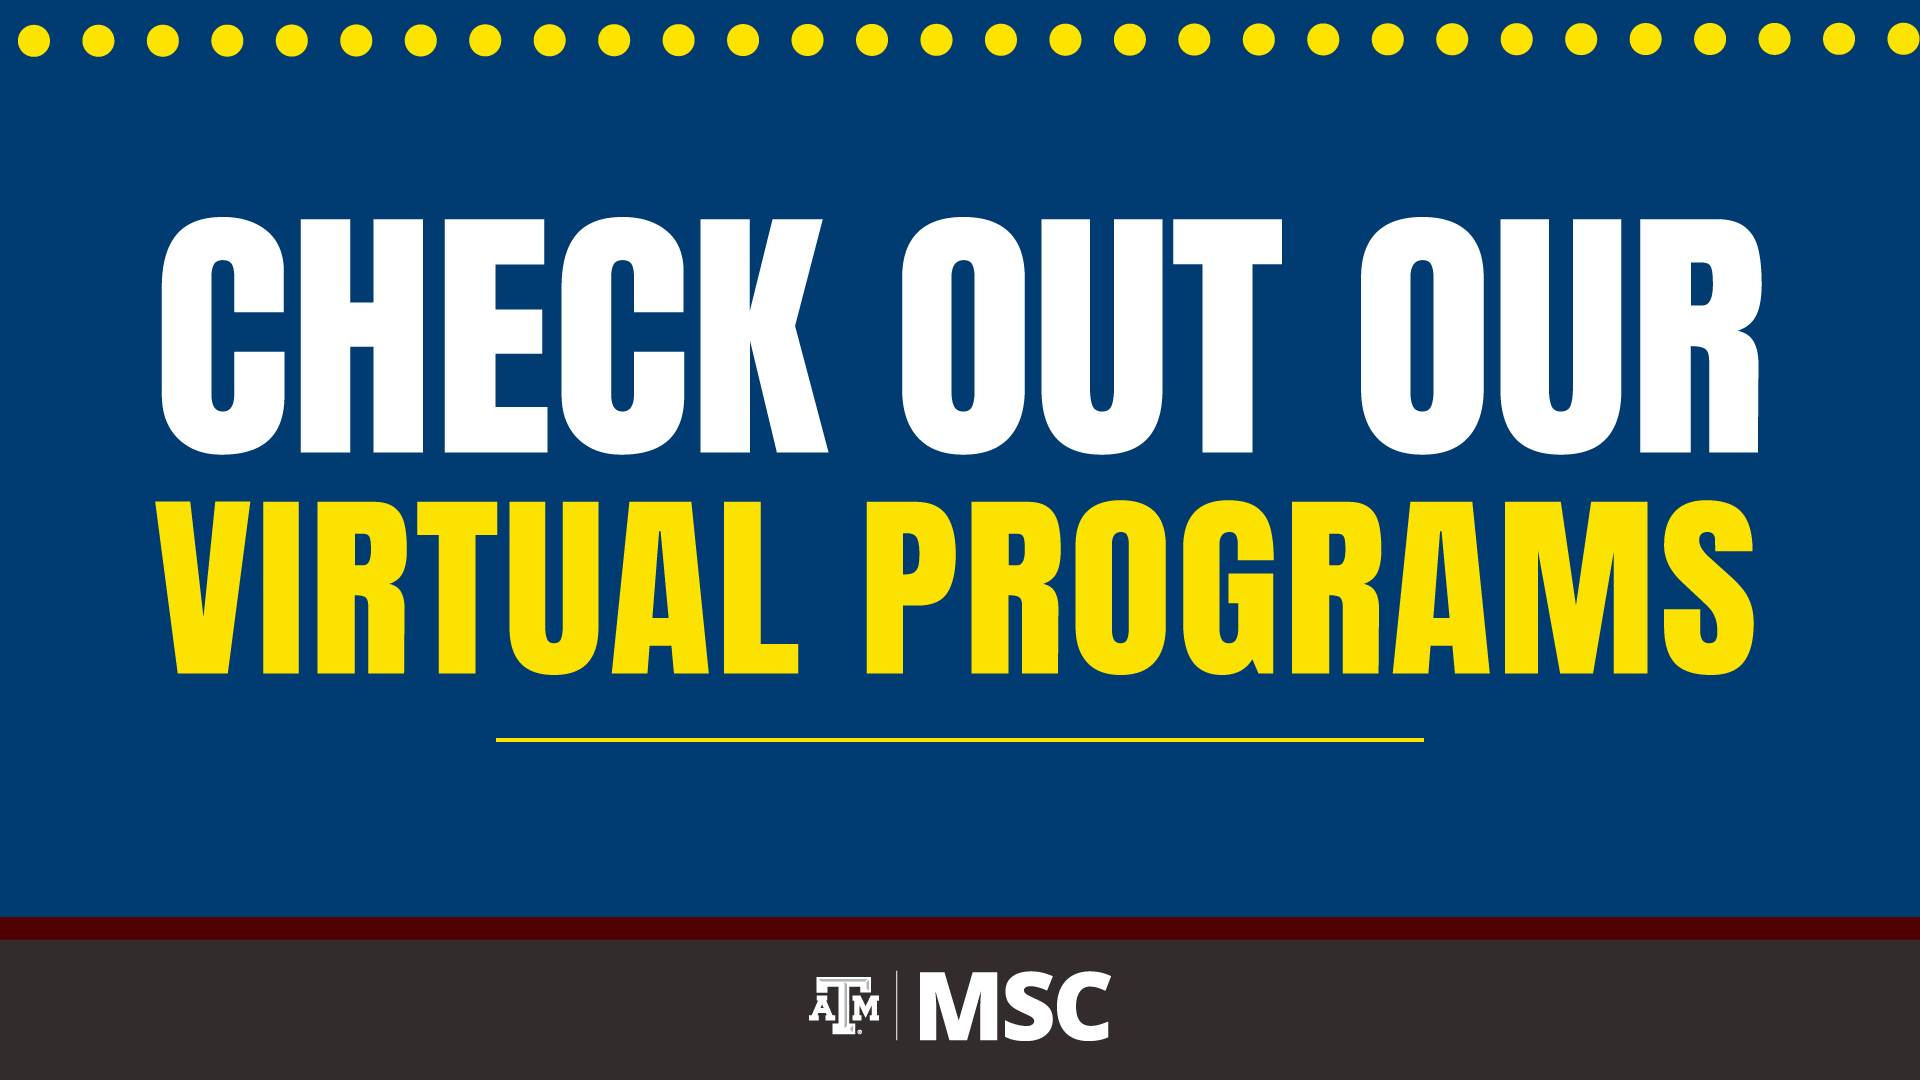 Check out our Virtual Programs Calendar